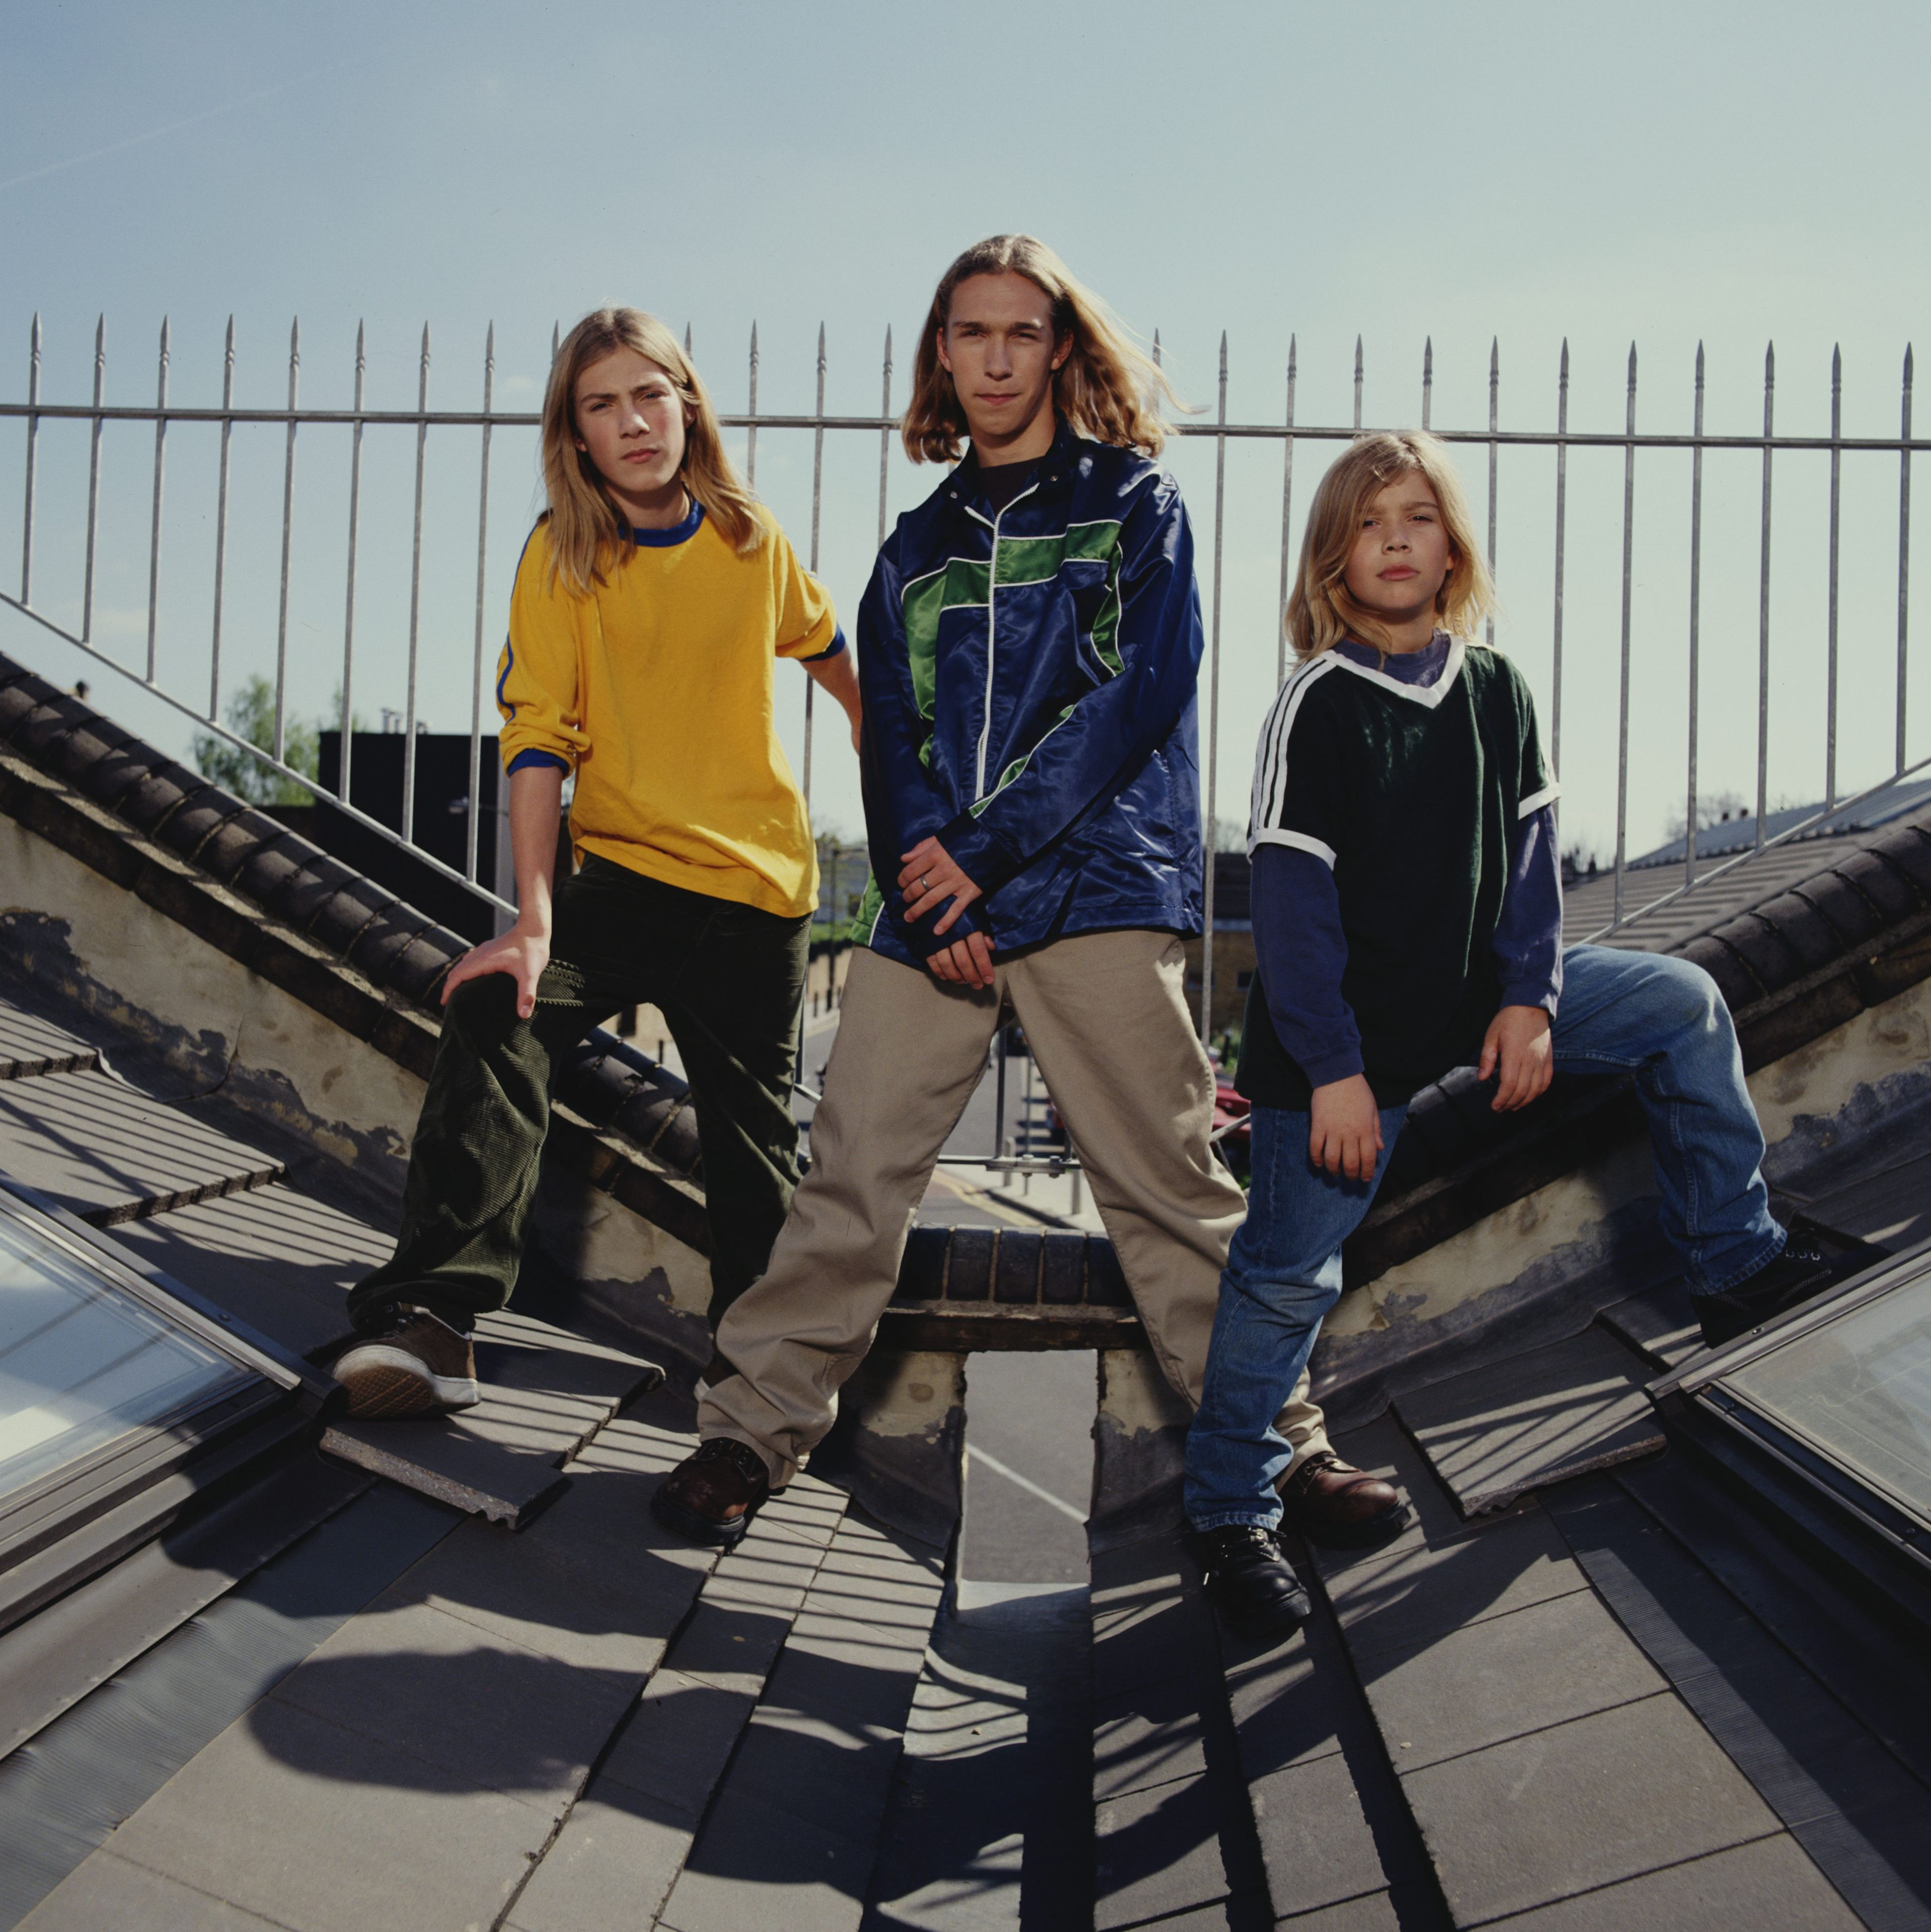 Hanson's 'MMMBop' was nearly a completely different song